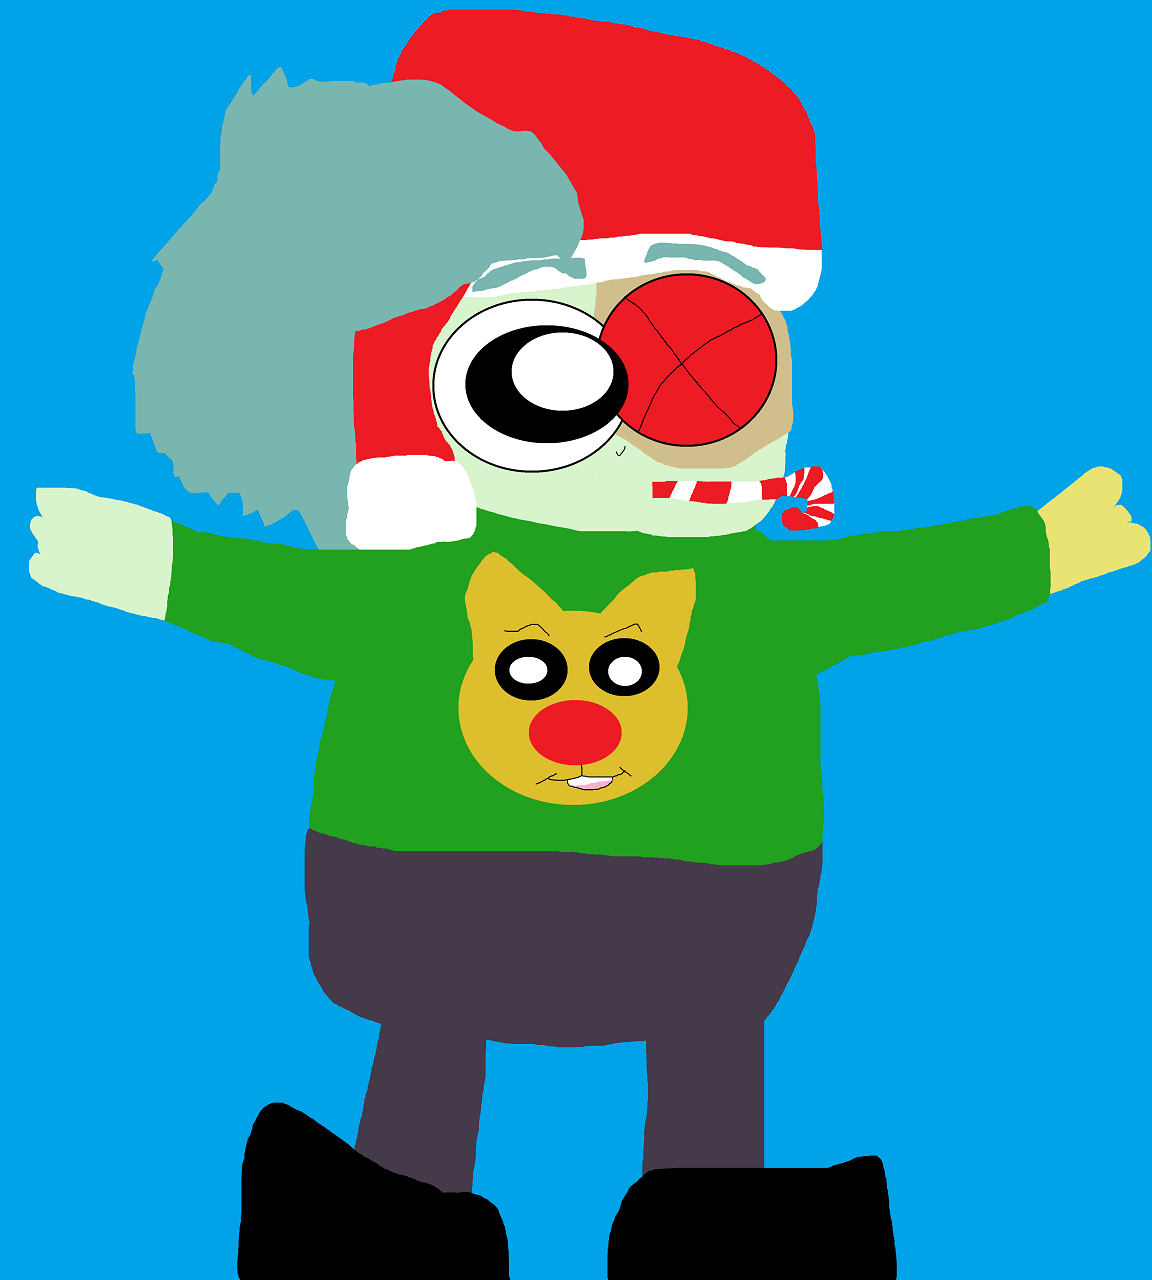 Another Boxman In His Other Christmas Sweater by Falconlobo